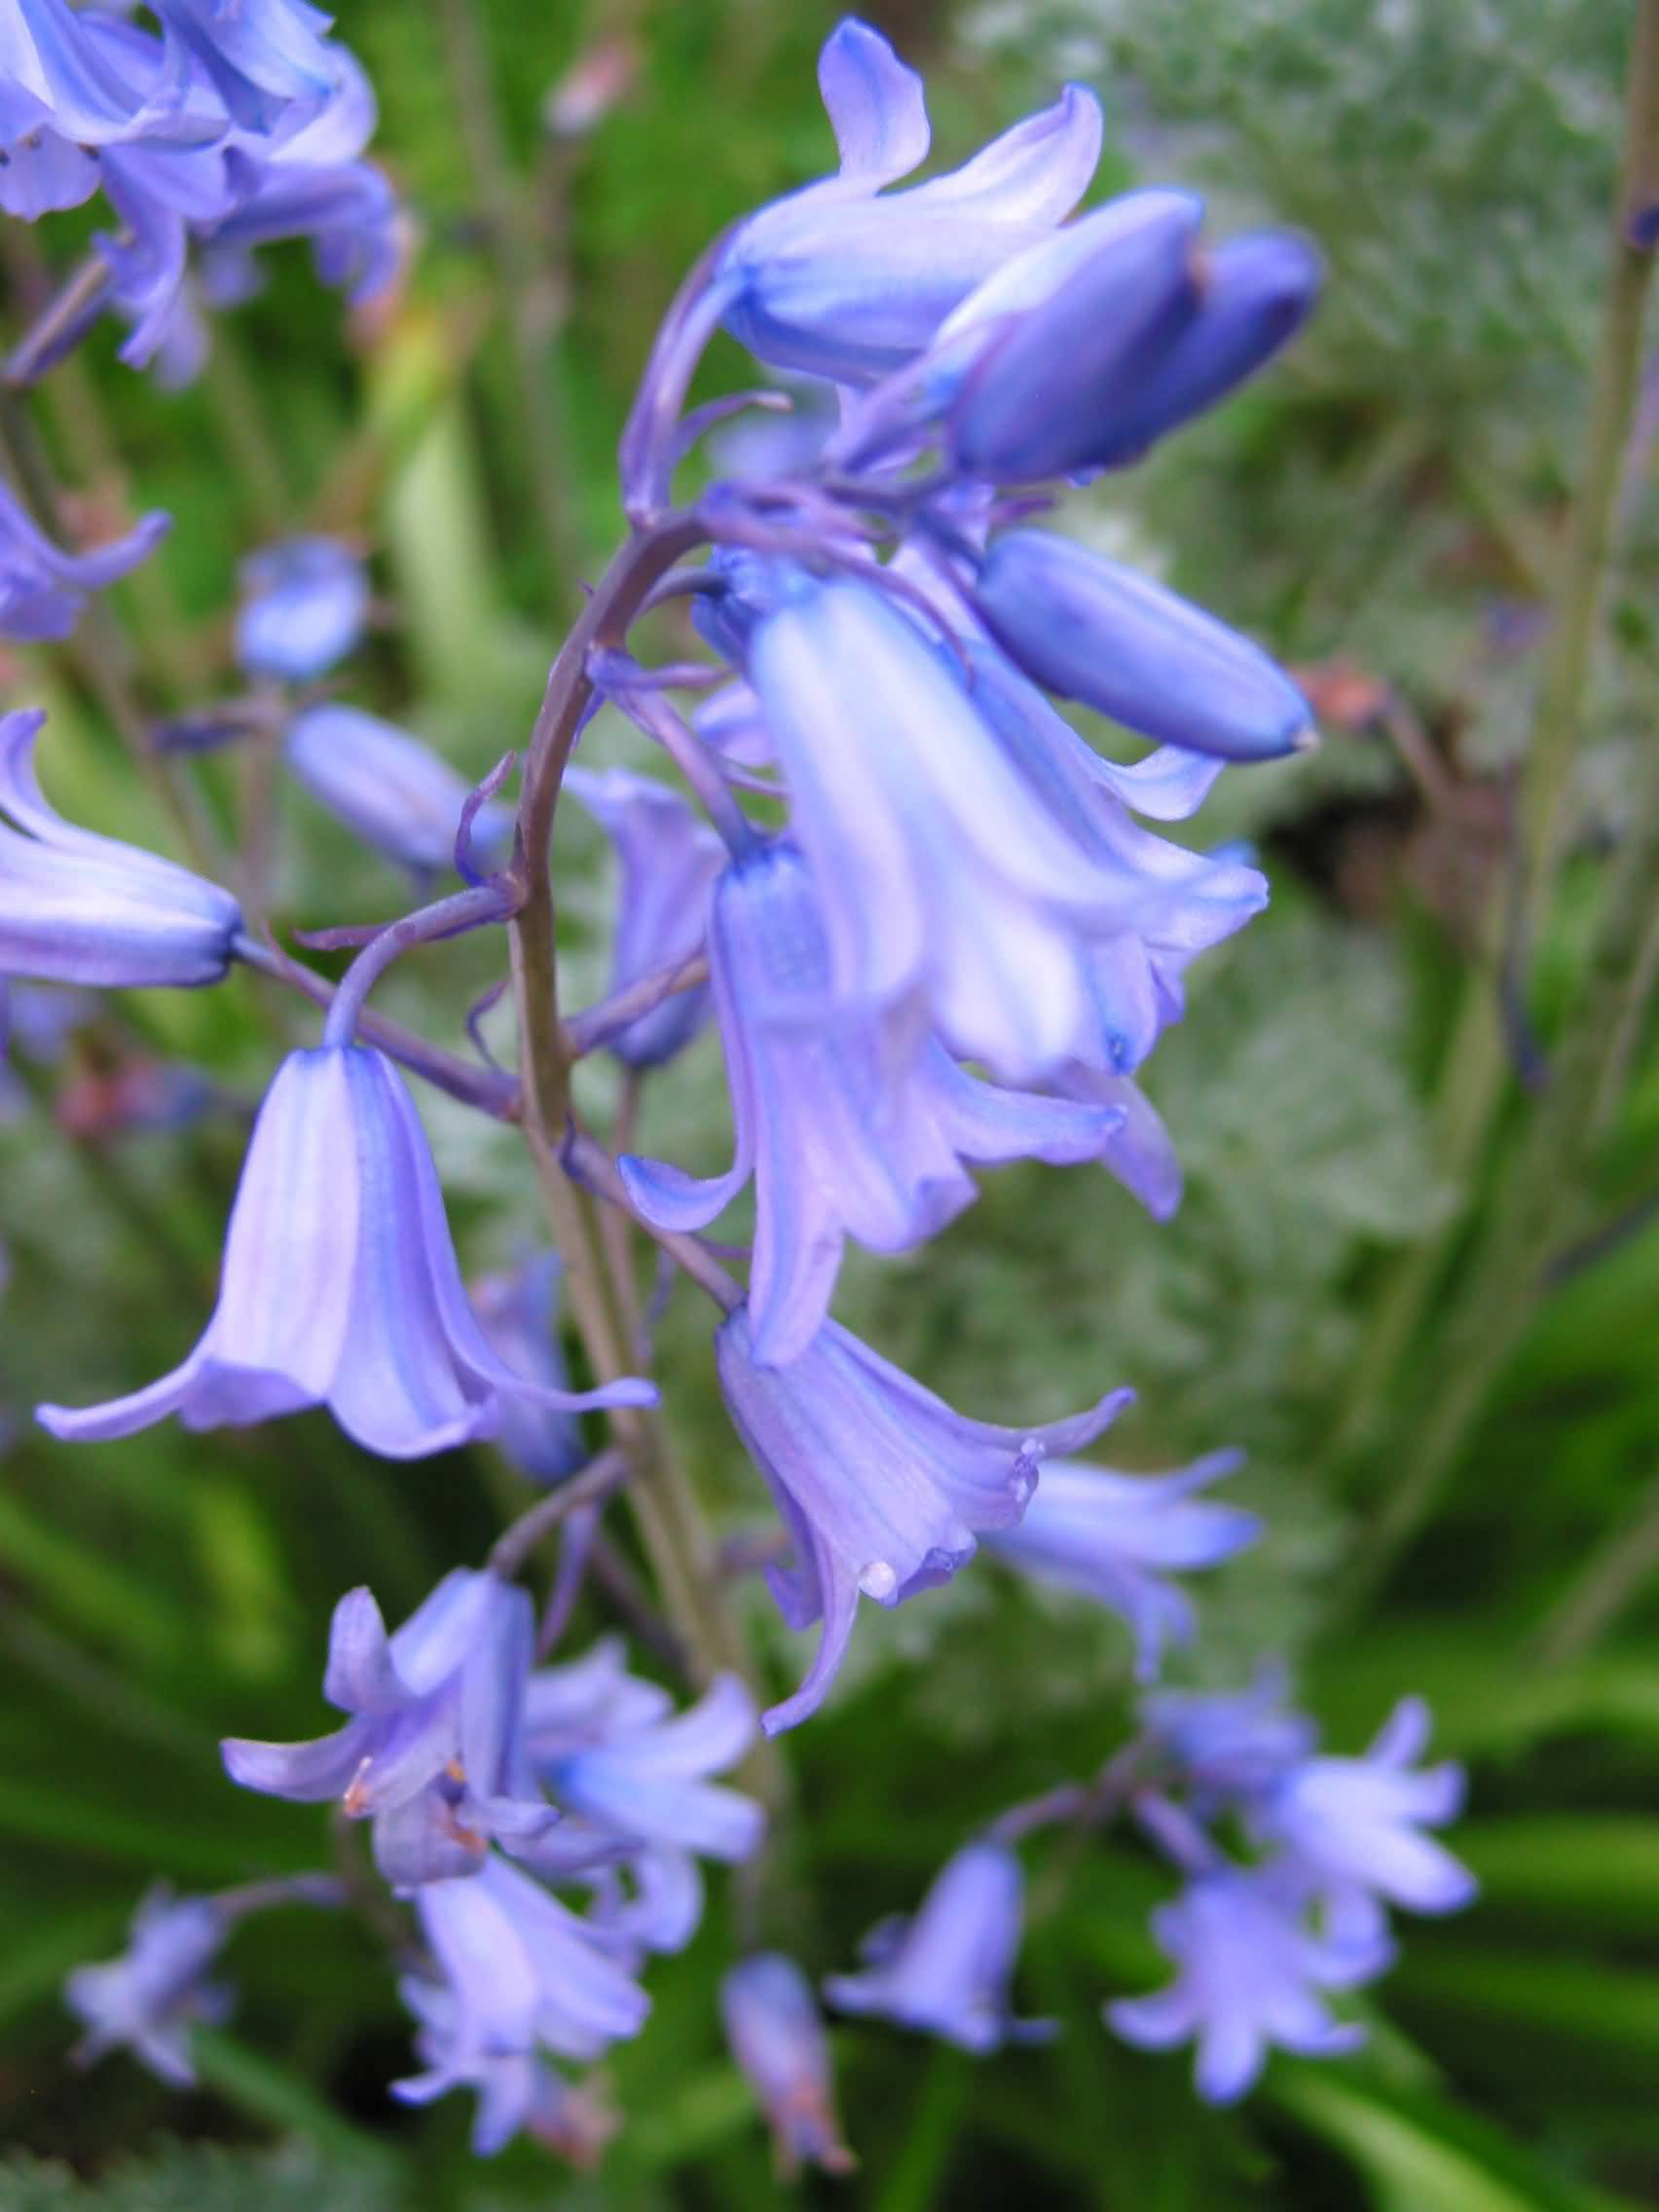 Mind Blowing Bluebell Flower With Green Leafs